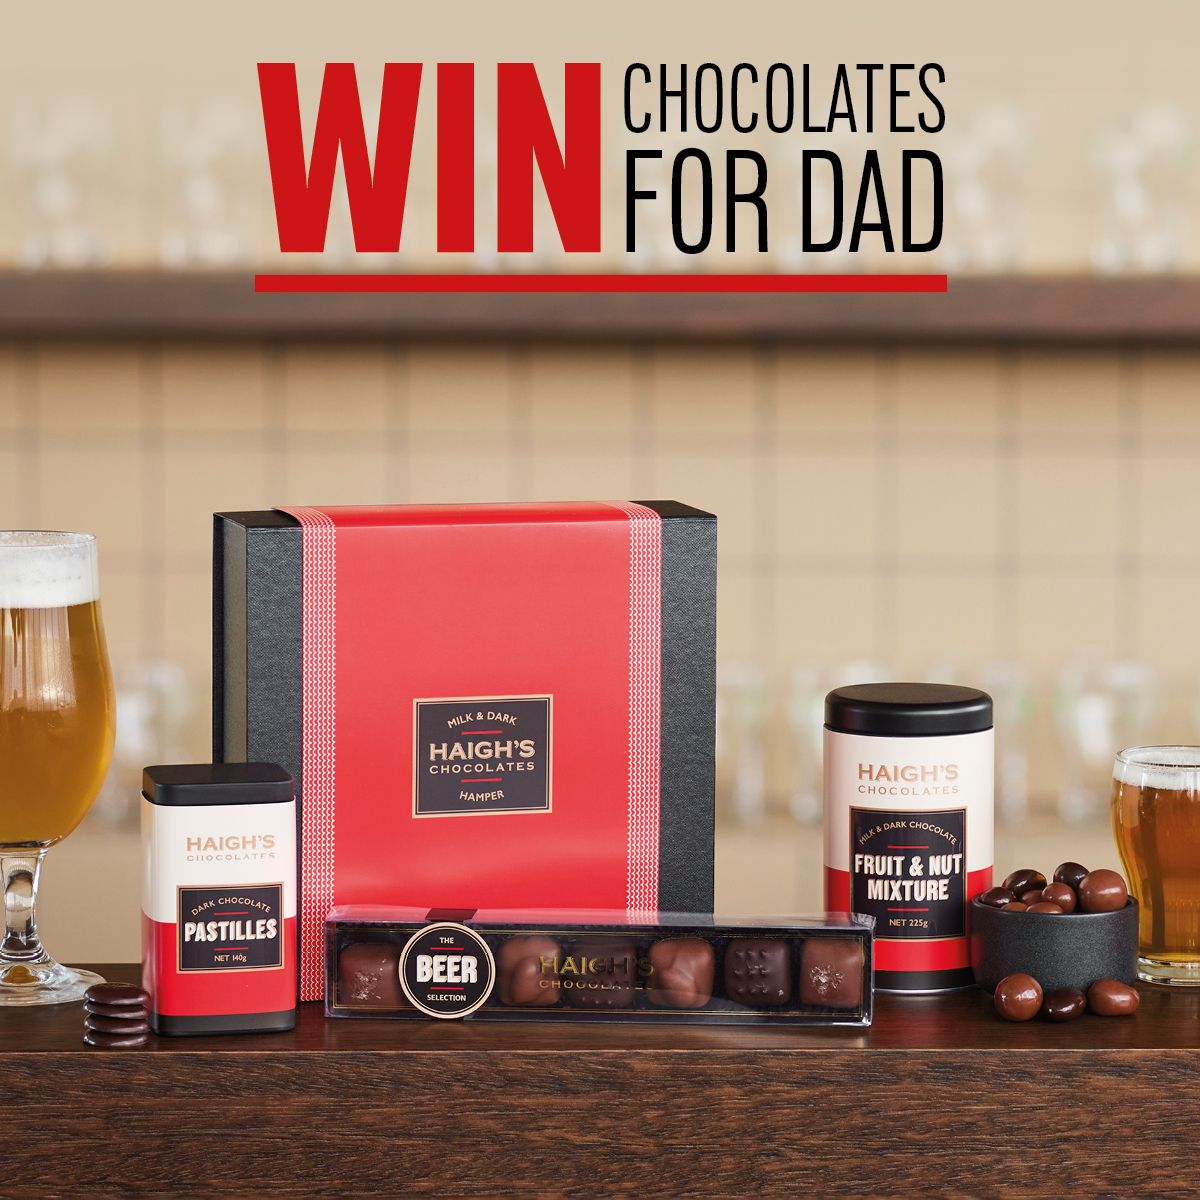 Win chocolates for Dad